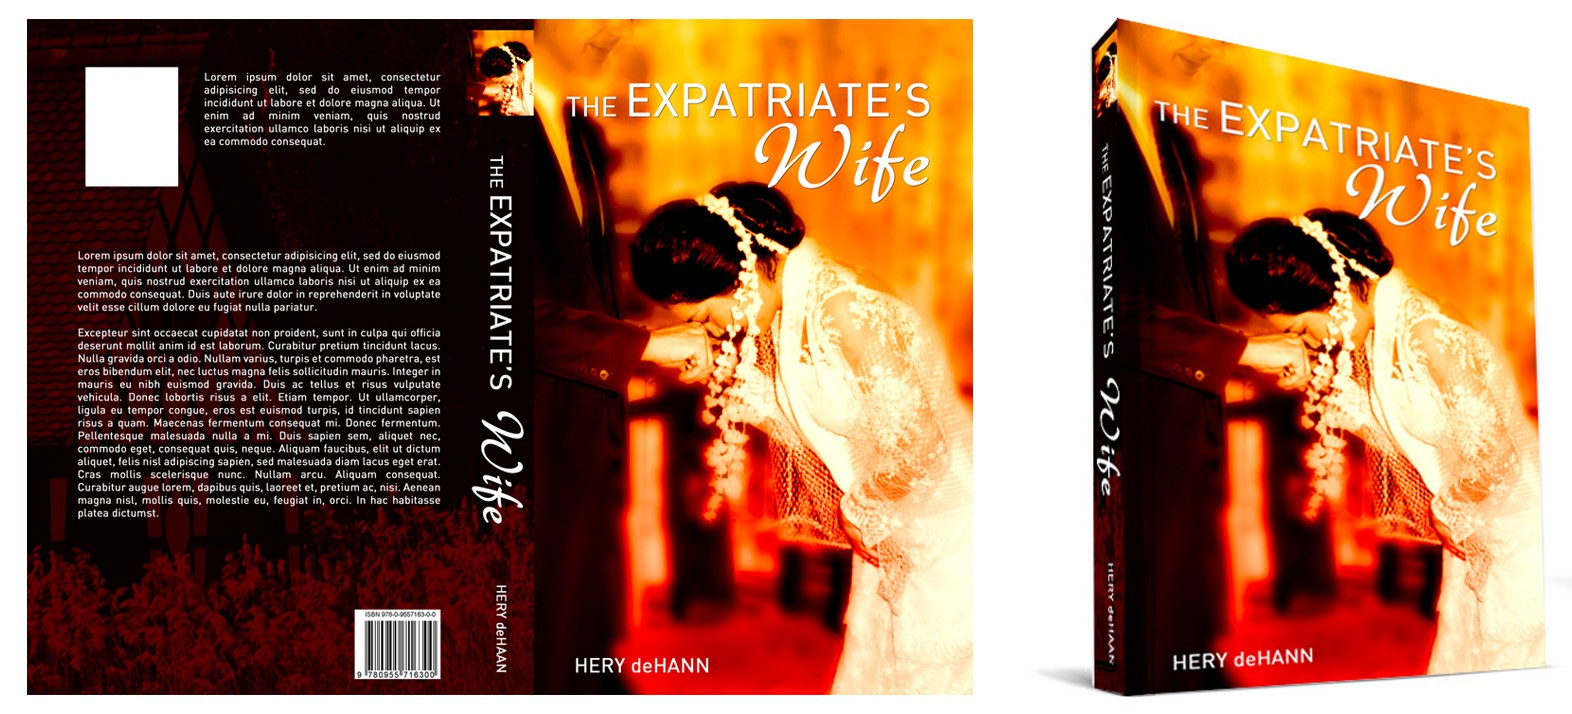 """The Expatriate's Wife"" , Author Hery deHaan, book cover design"